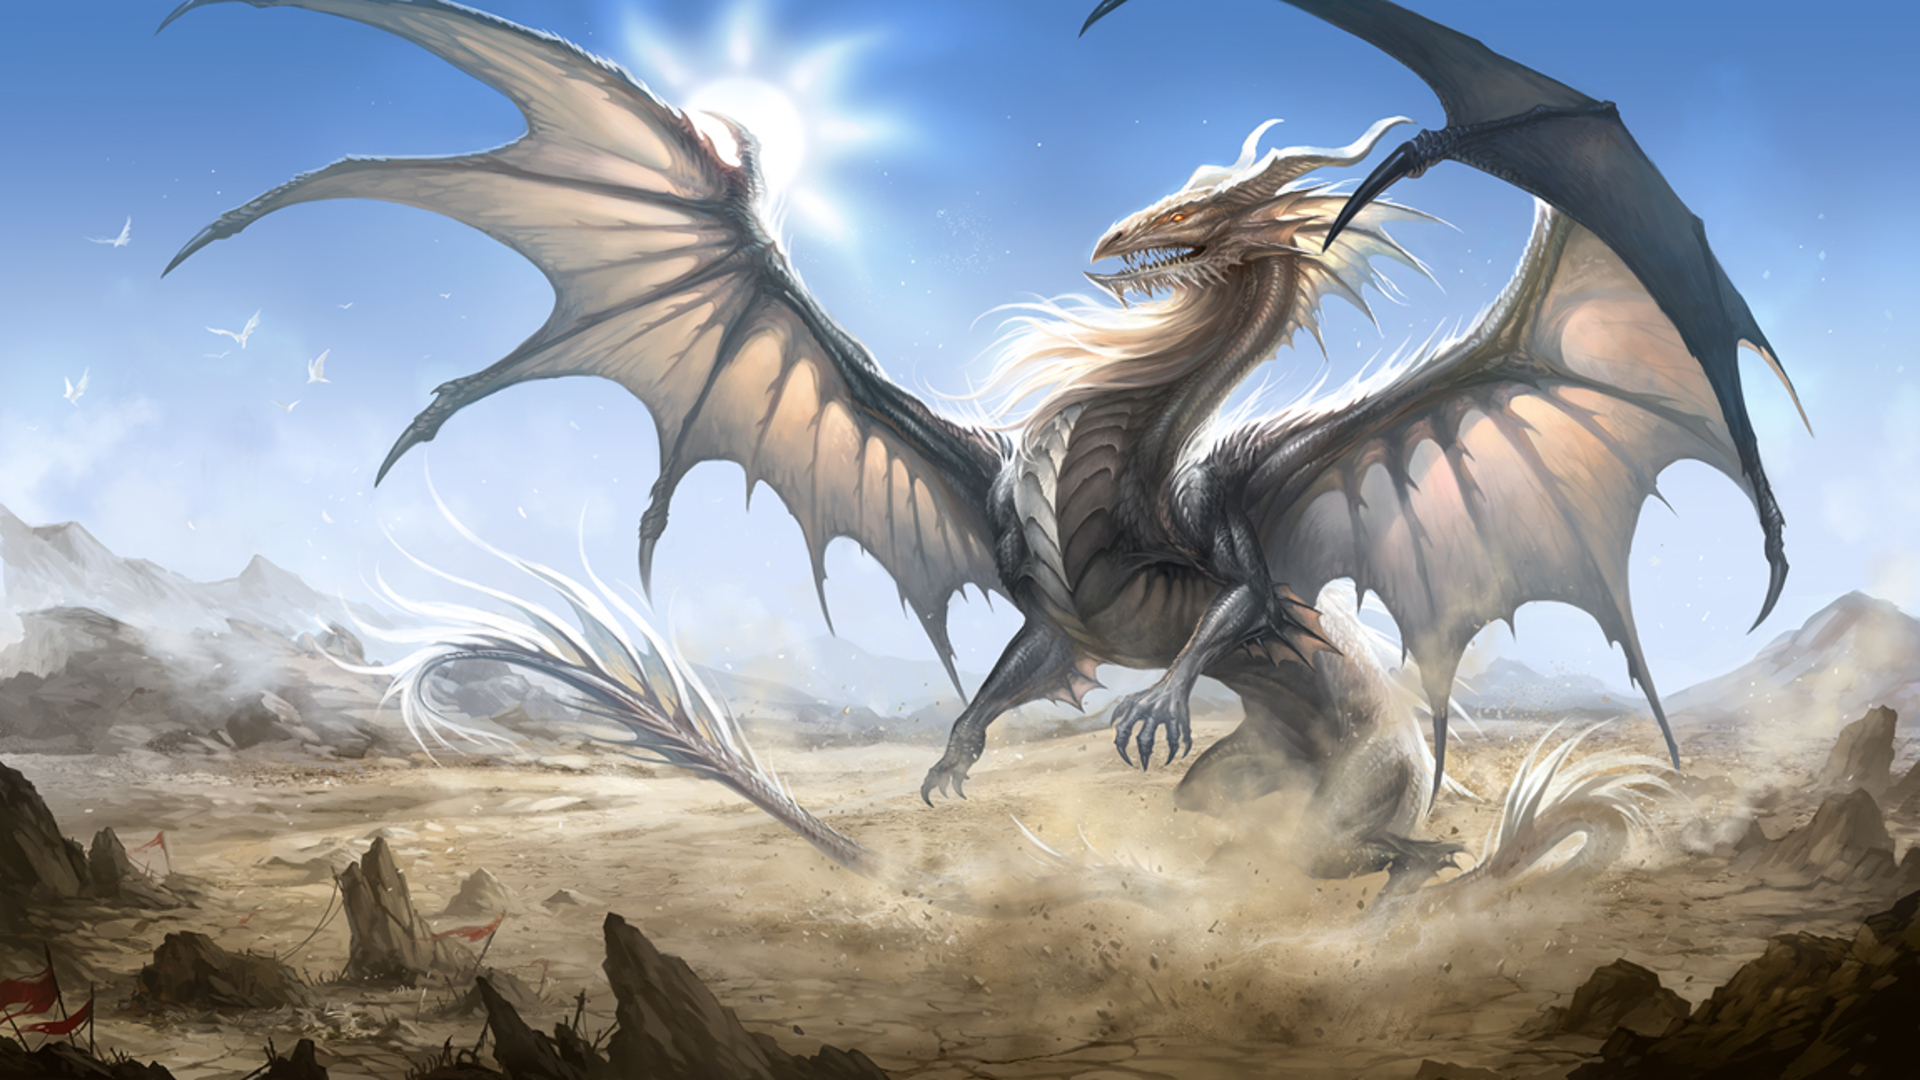 images about dragons on Pinterest  Dragon eye, Full hd 1920x1080